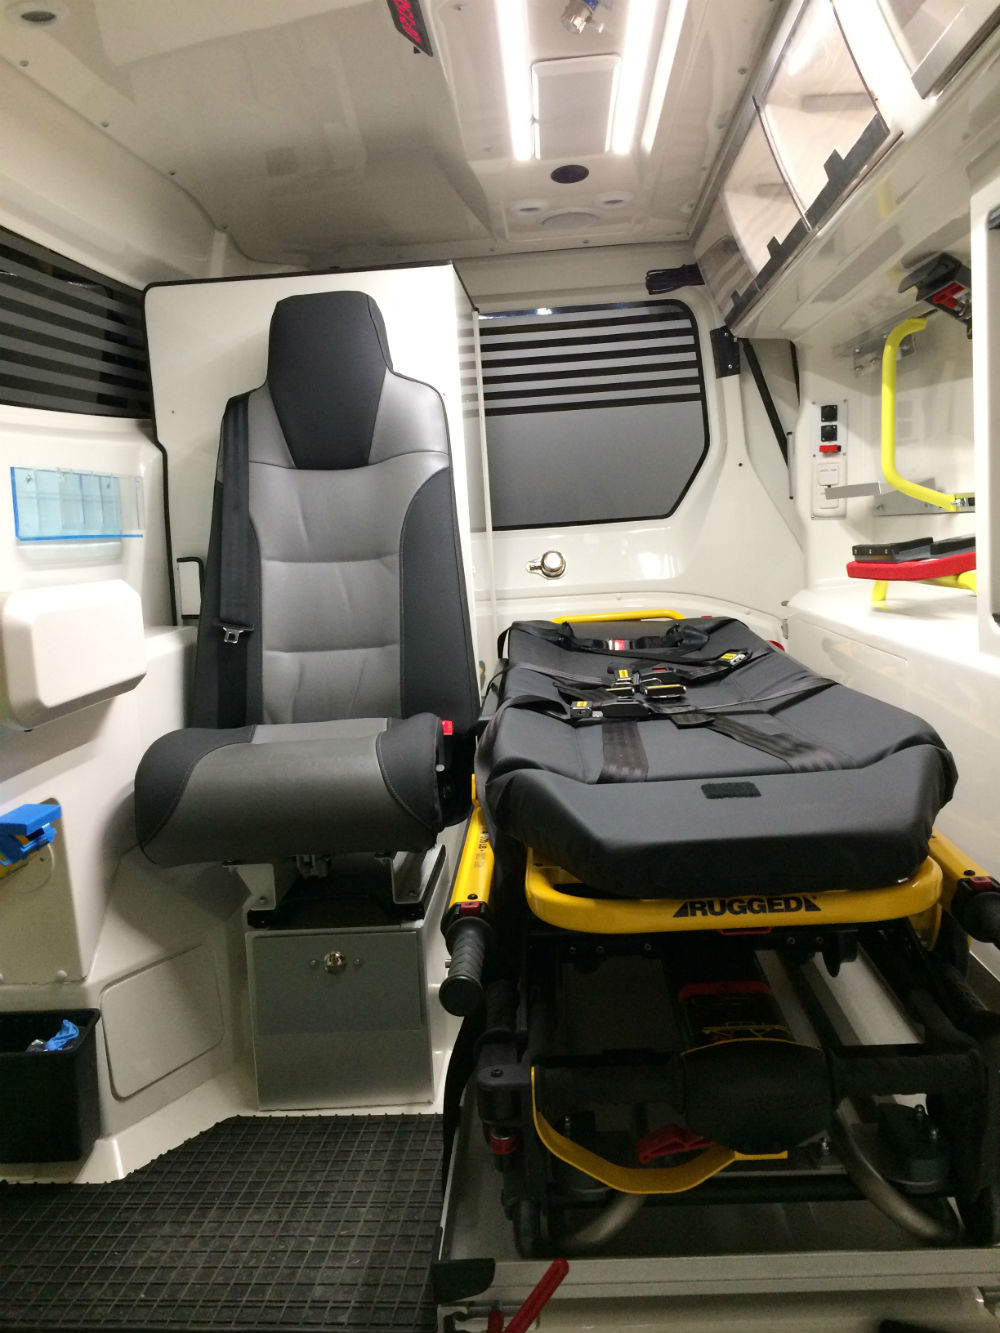 Xc90 Ambulance >> This Volvo Xc90 Is The Ambulance I Want To Ride In If I Ever Need To